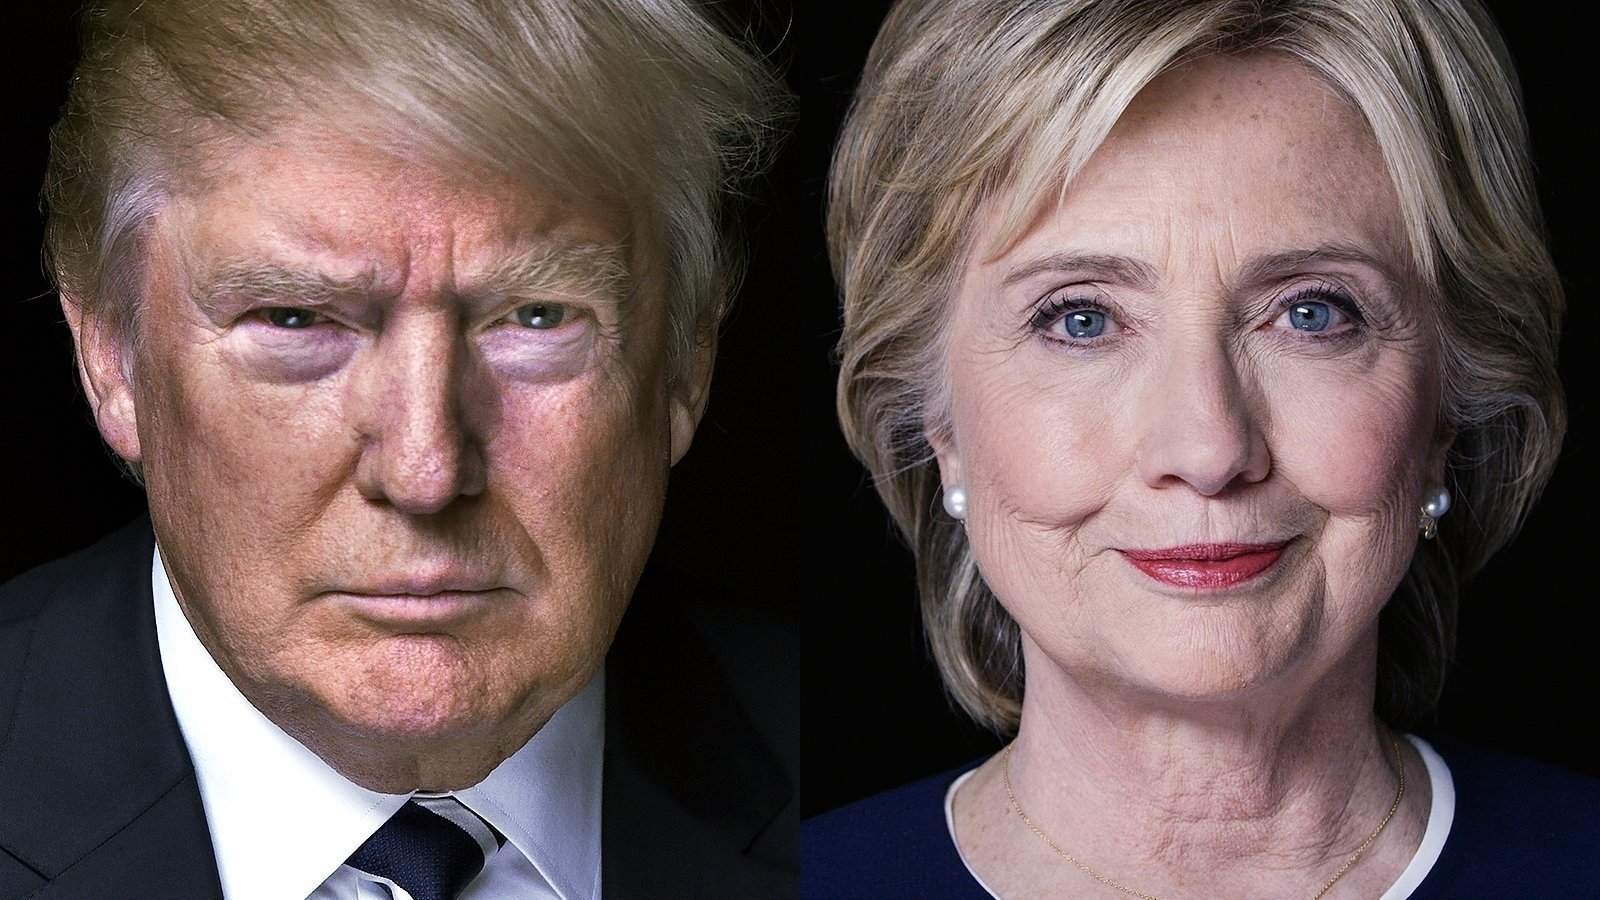 The 90-minute televised debate comes six weeks before Election Day and with early voting already getting underway in some states. (CNN)